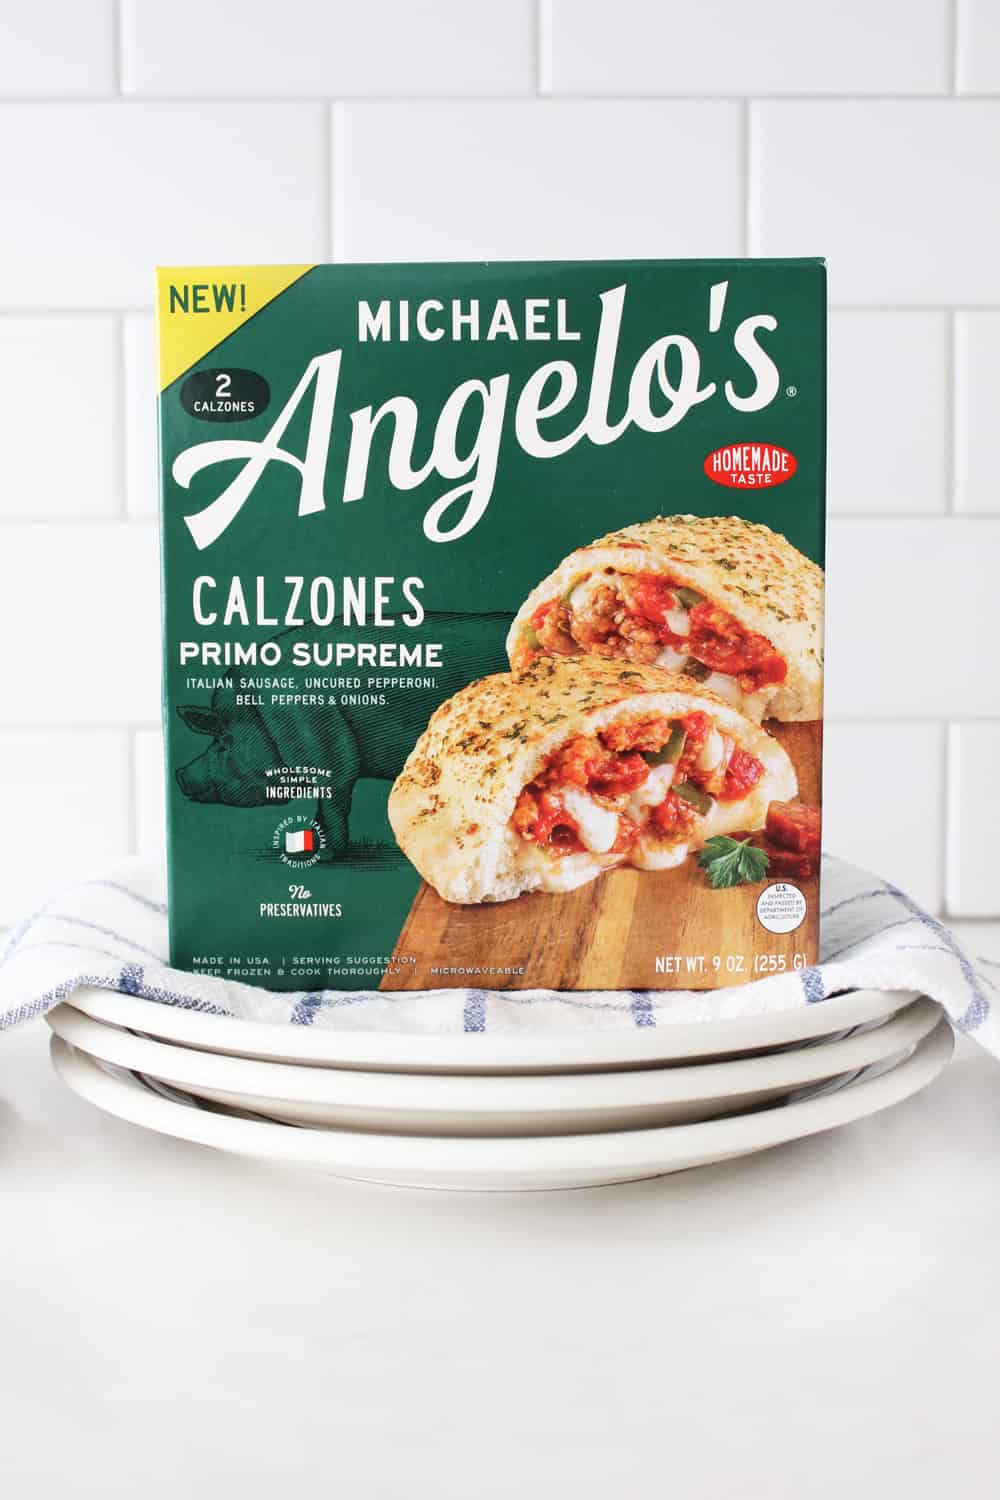 Michael Angelo's New Calzones